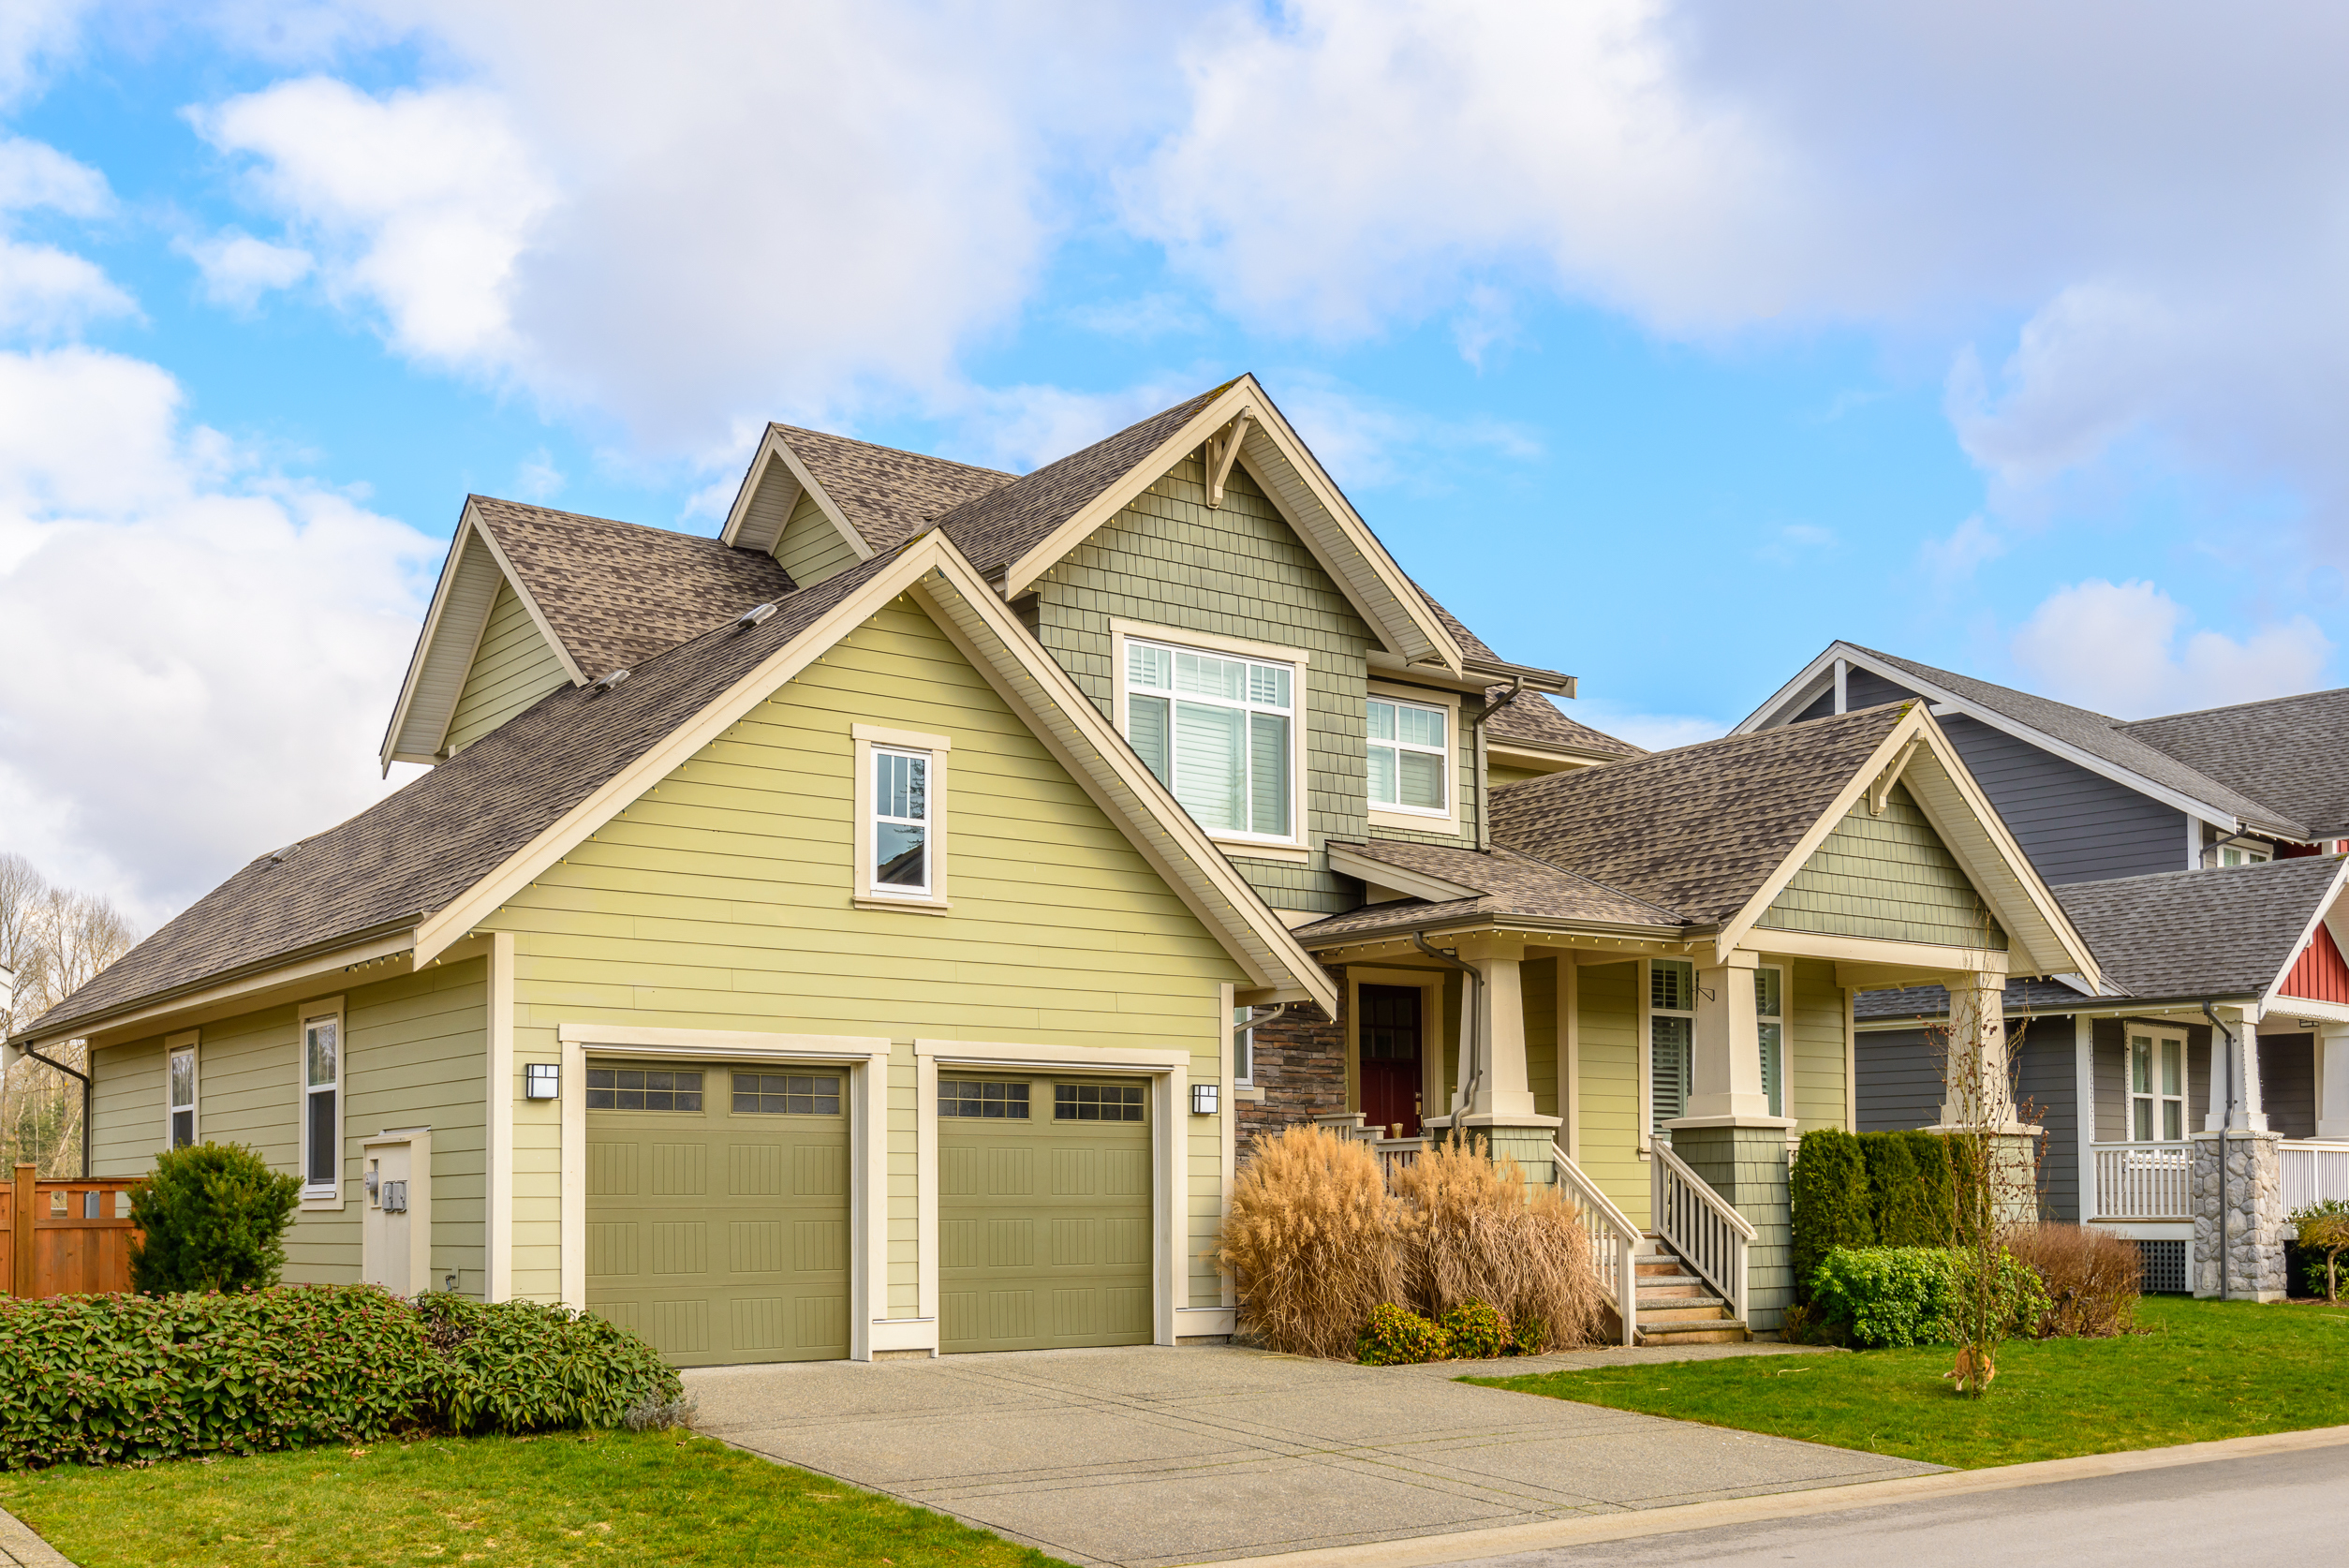 The Best Roofing Contractors in Bergen County NJ Offer These 3 Services